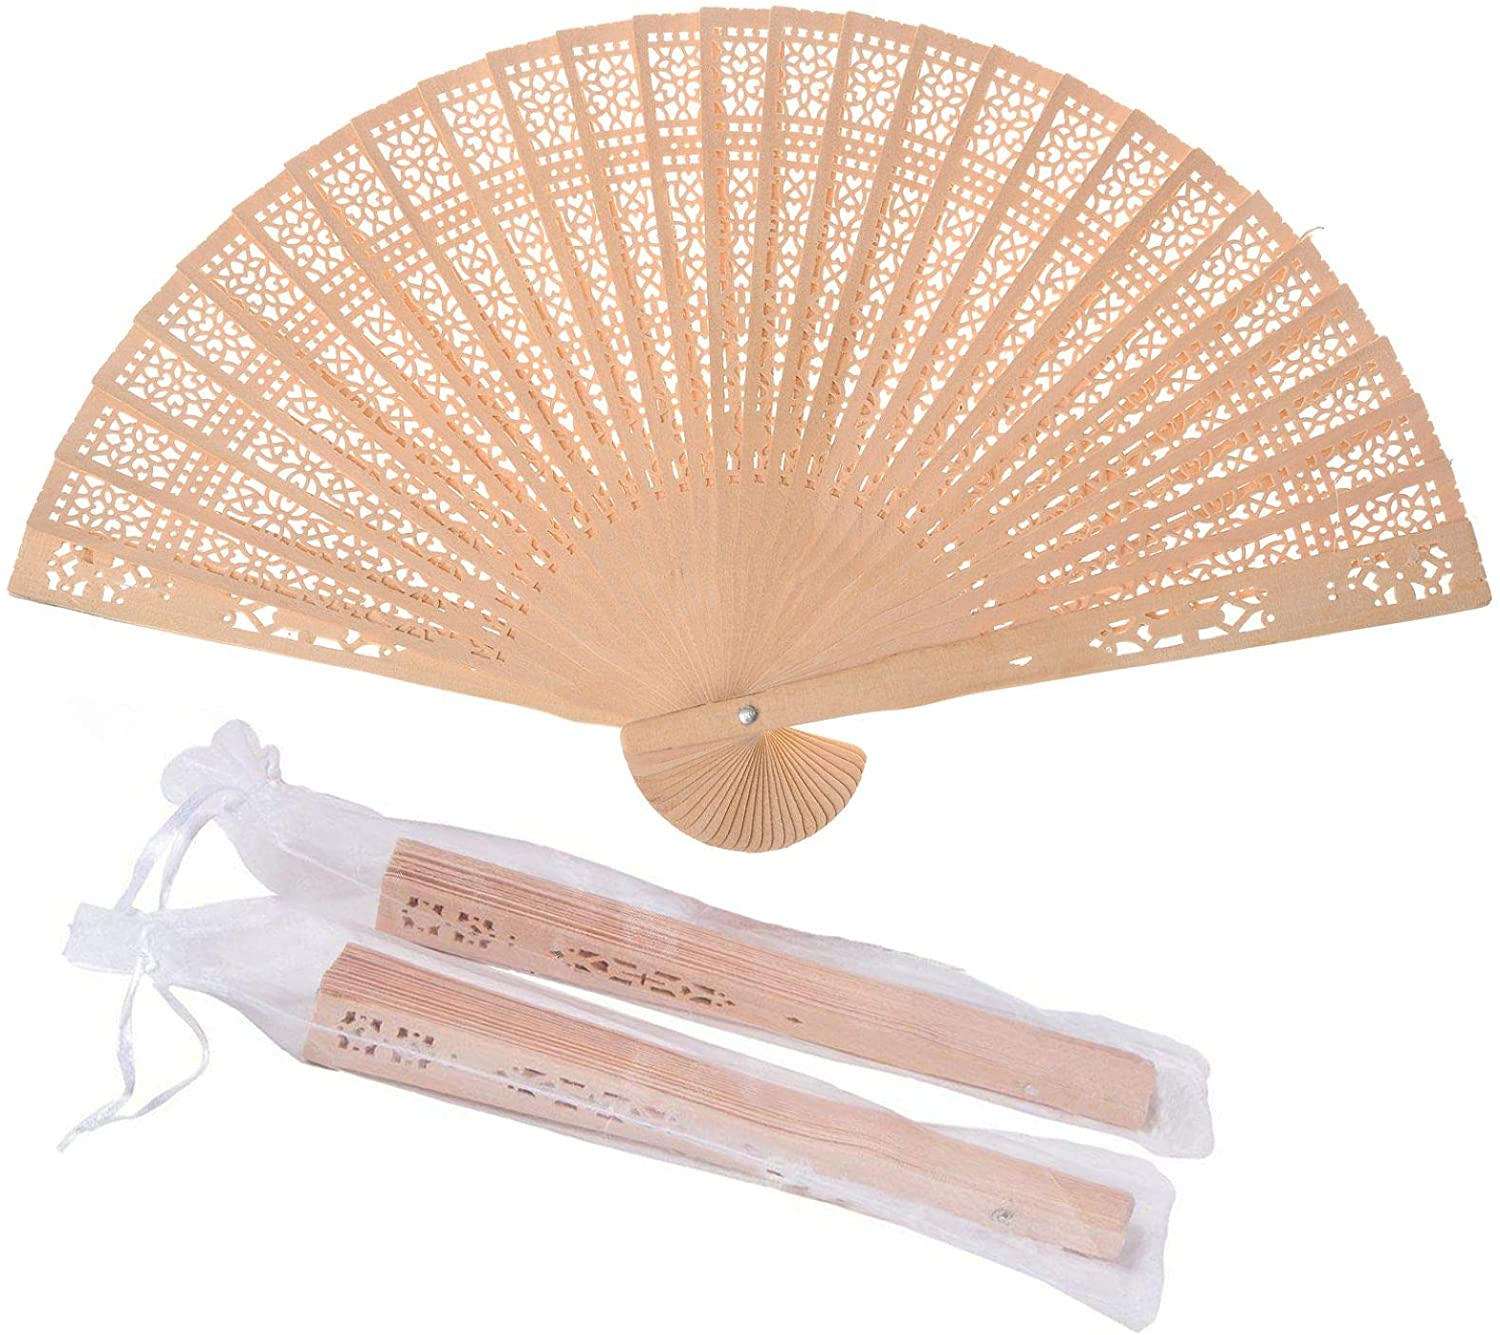 SL crafts Attention brand Wooden Hand Fan Held W Bags with Folding Ranking TOP17 Gift